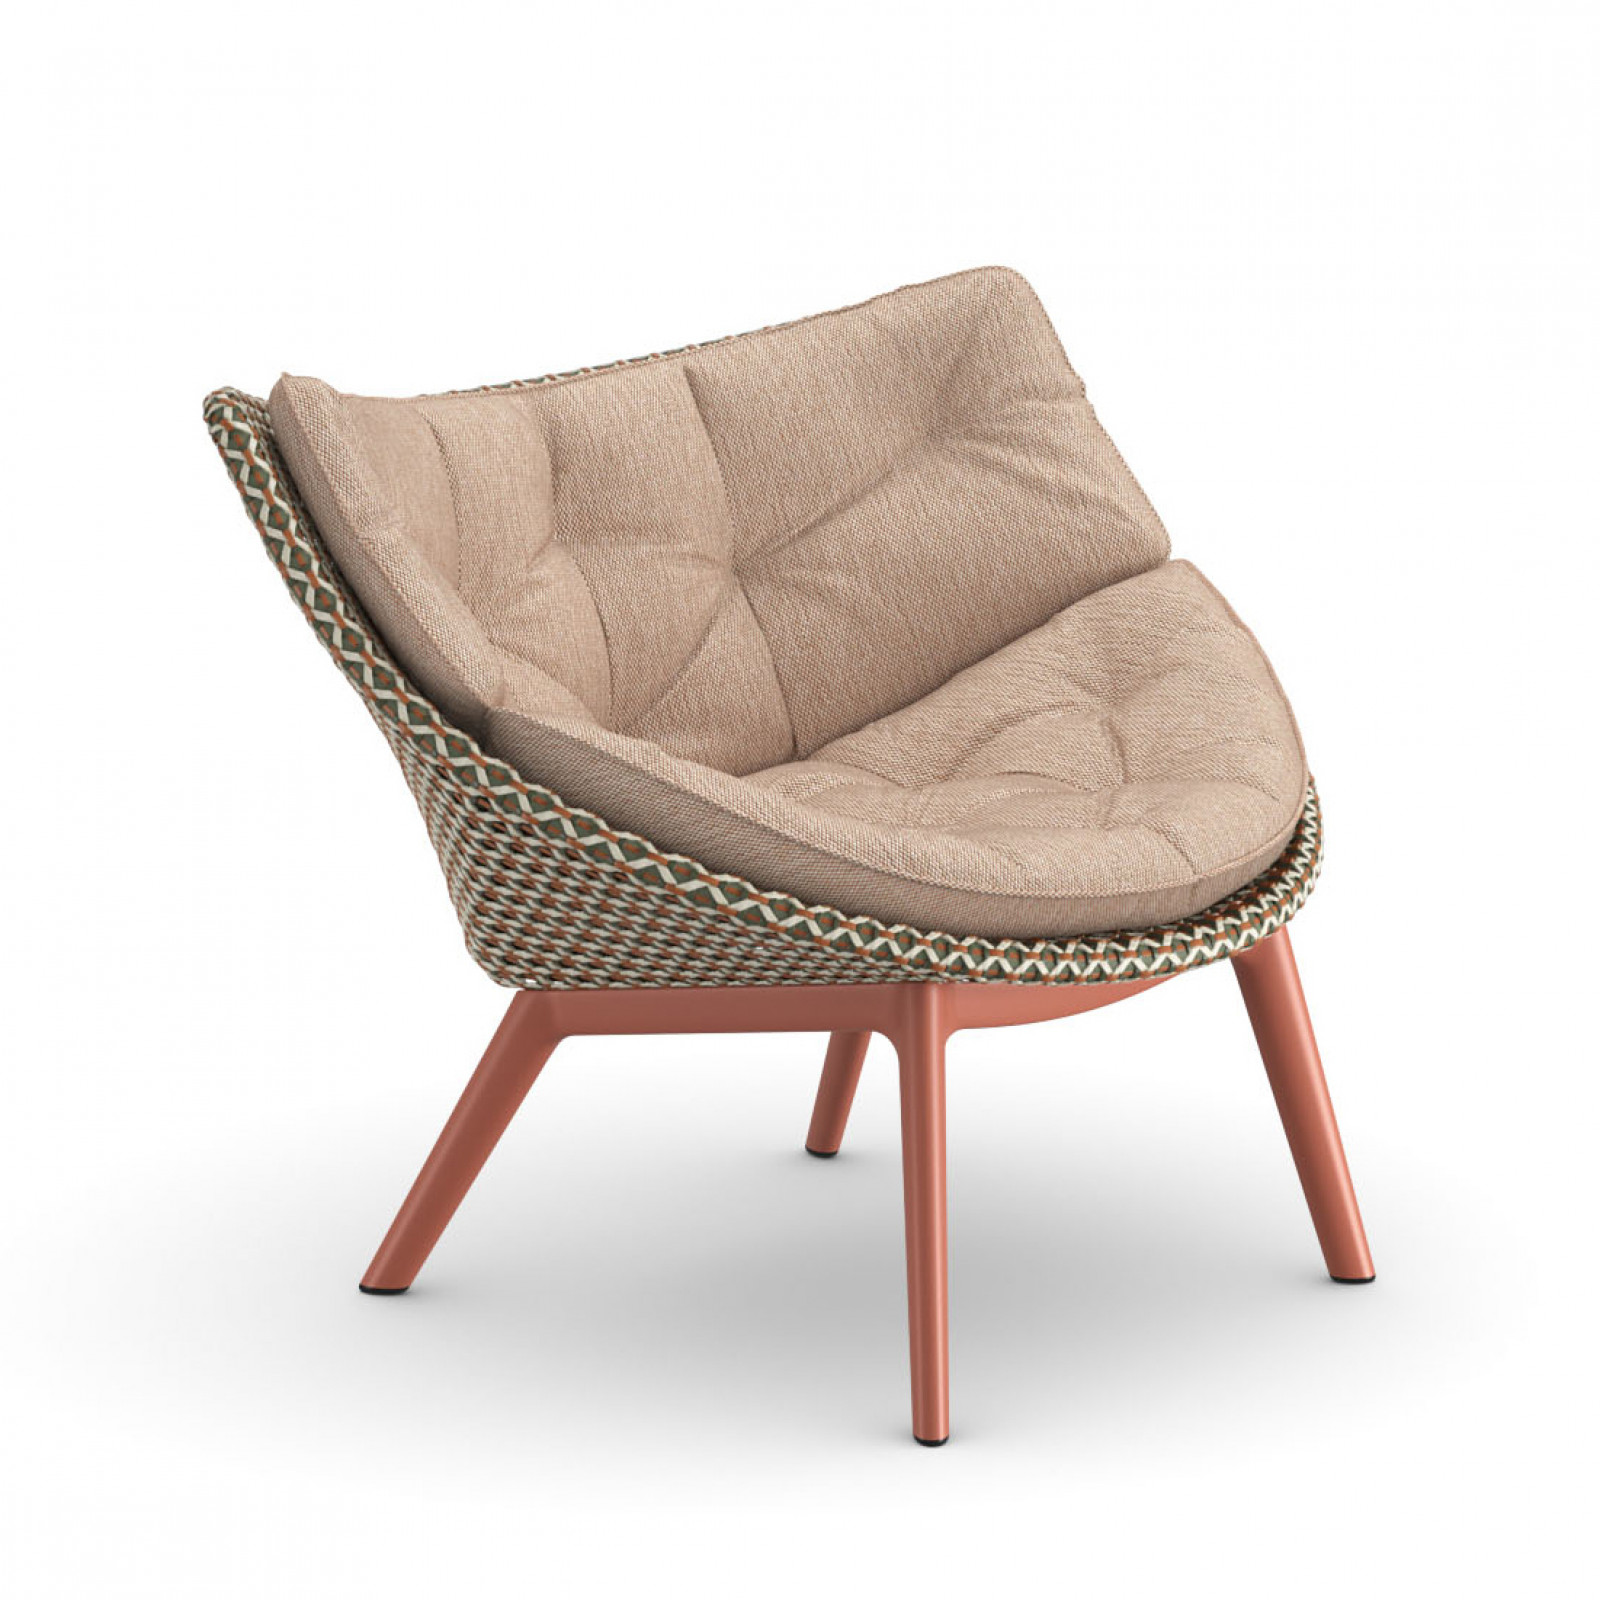 Mbrace Loungessel: Chestnut + Cool terracotta